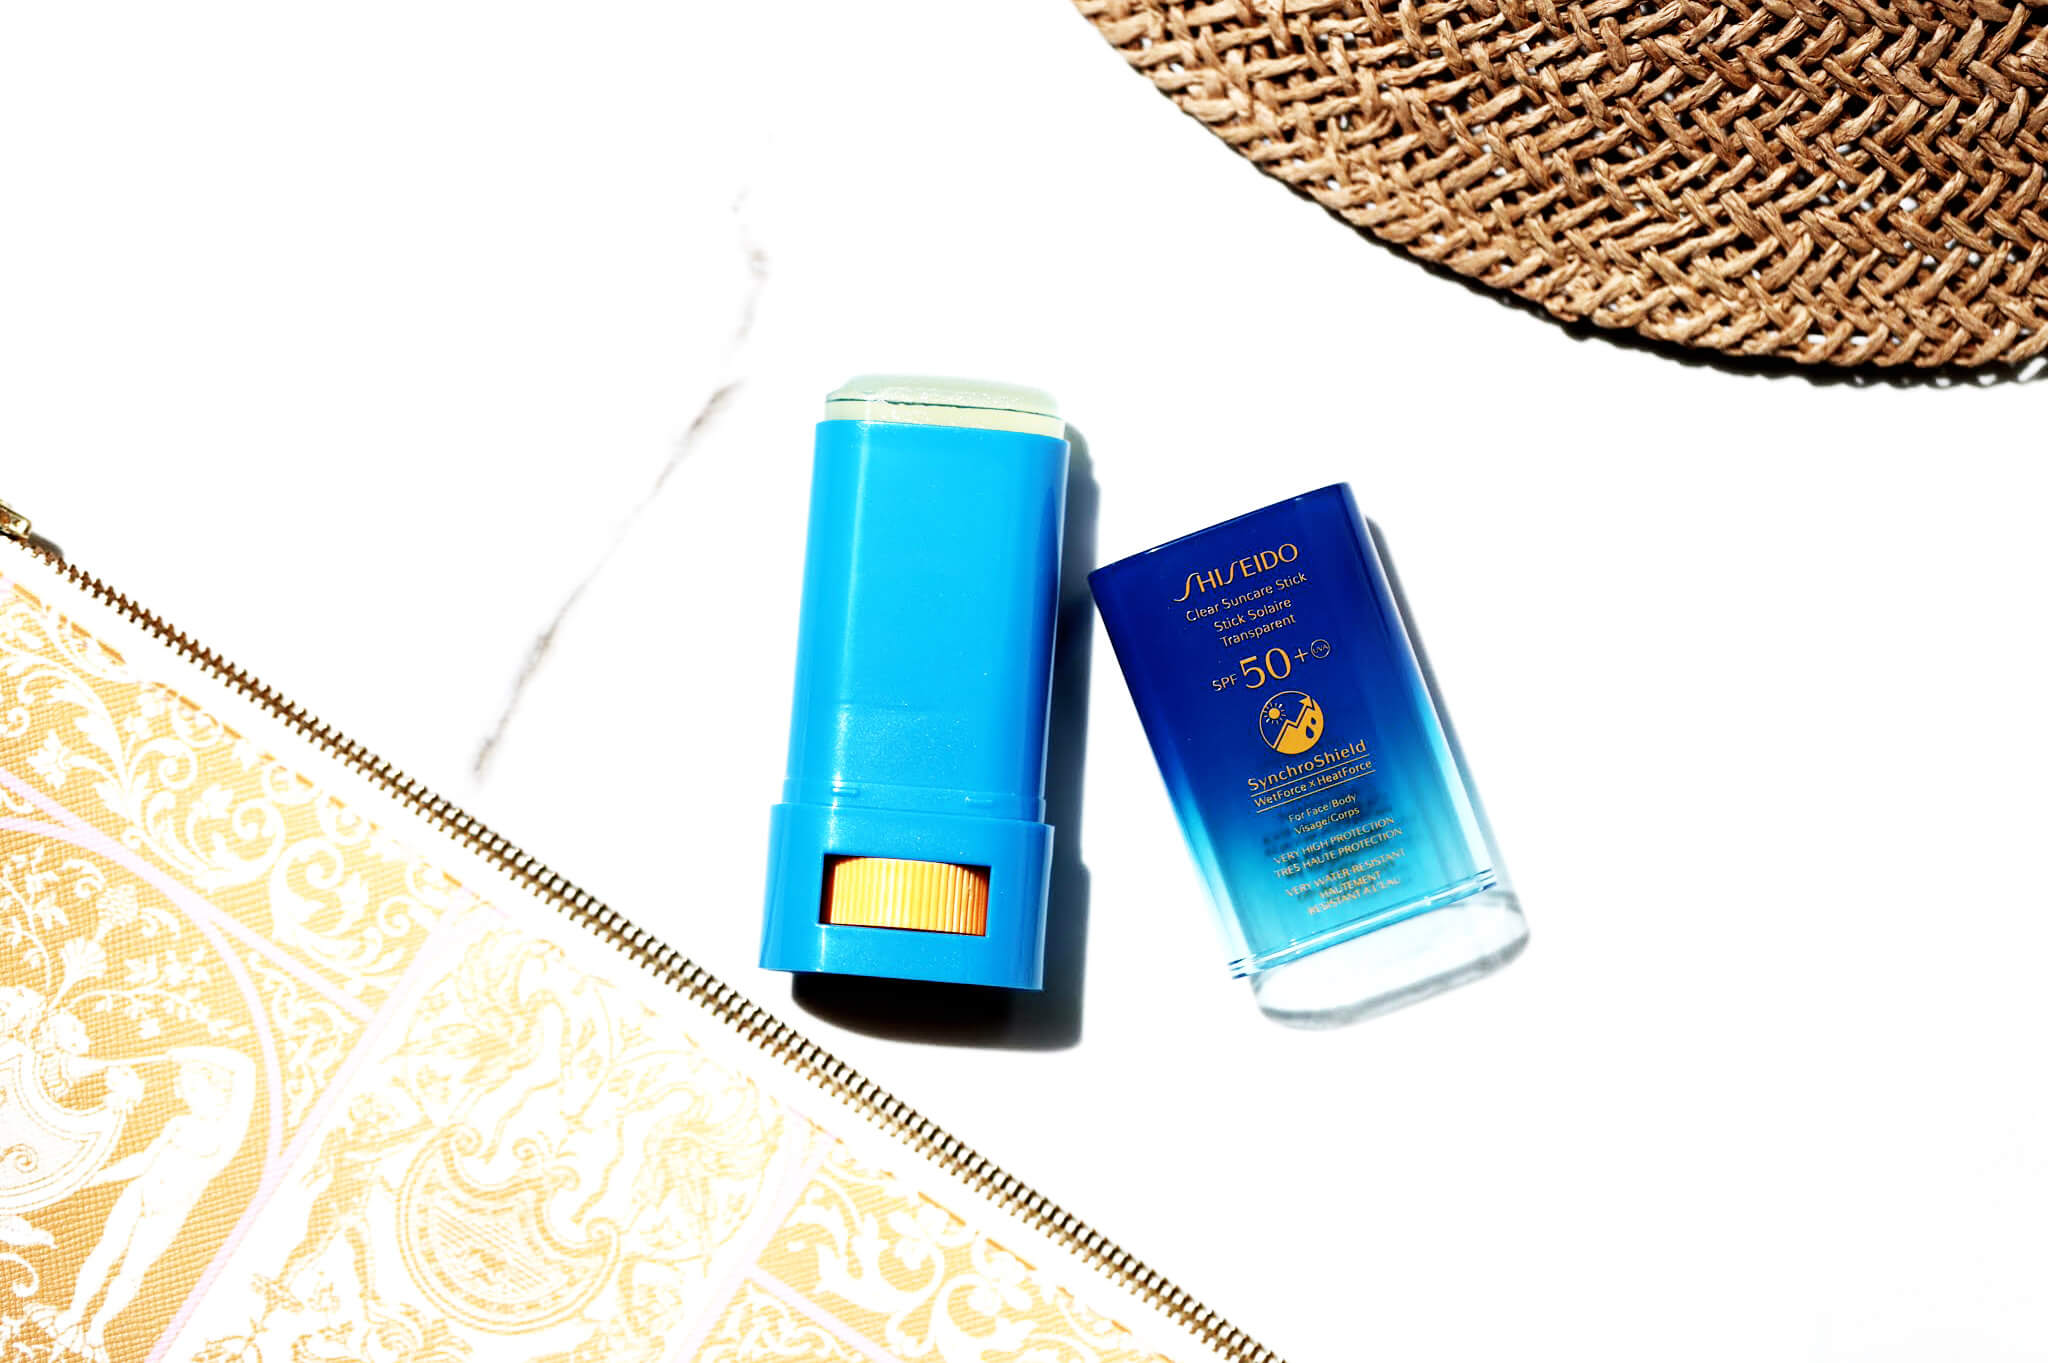 shiseido solaires wet force